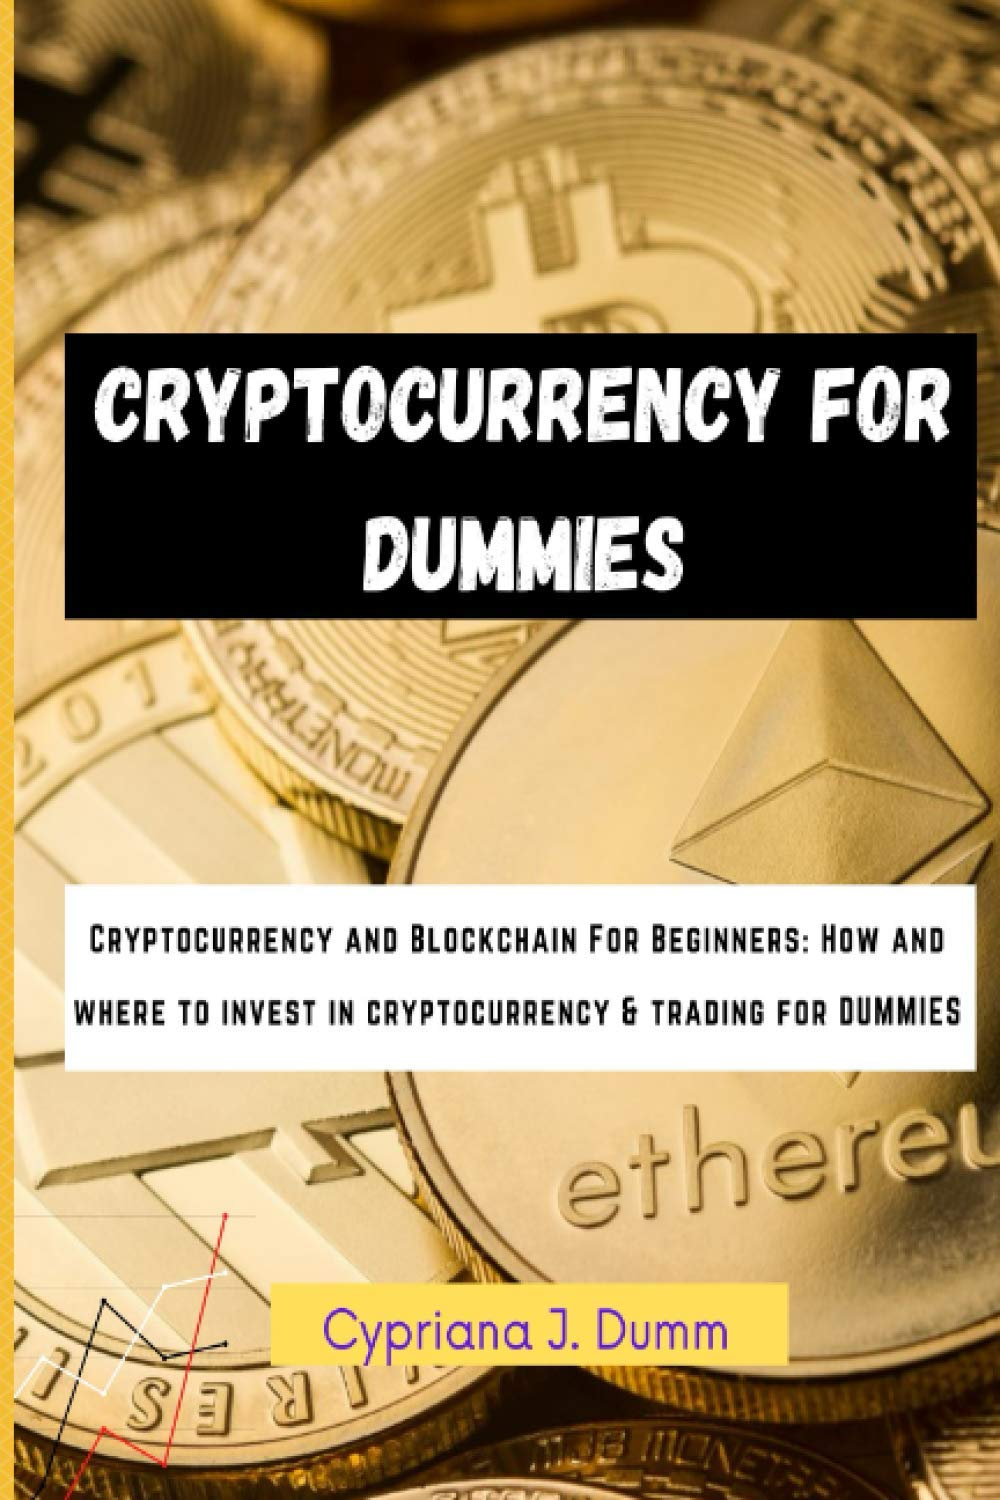 Cryptocurrency For Dummies: Beginners Guide on How and Where to Invest in  Cryptocurrency in 2021, Trading for Beginners with Zero Previous Knowledge  | Cryptocurrency and Blockchain: Dumm, Cypriana J.: 9798702585550:  Amazon.com: Books